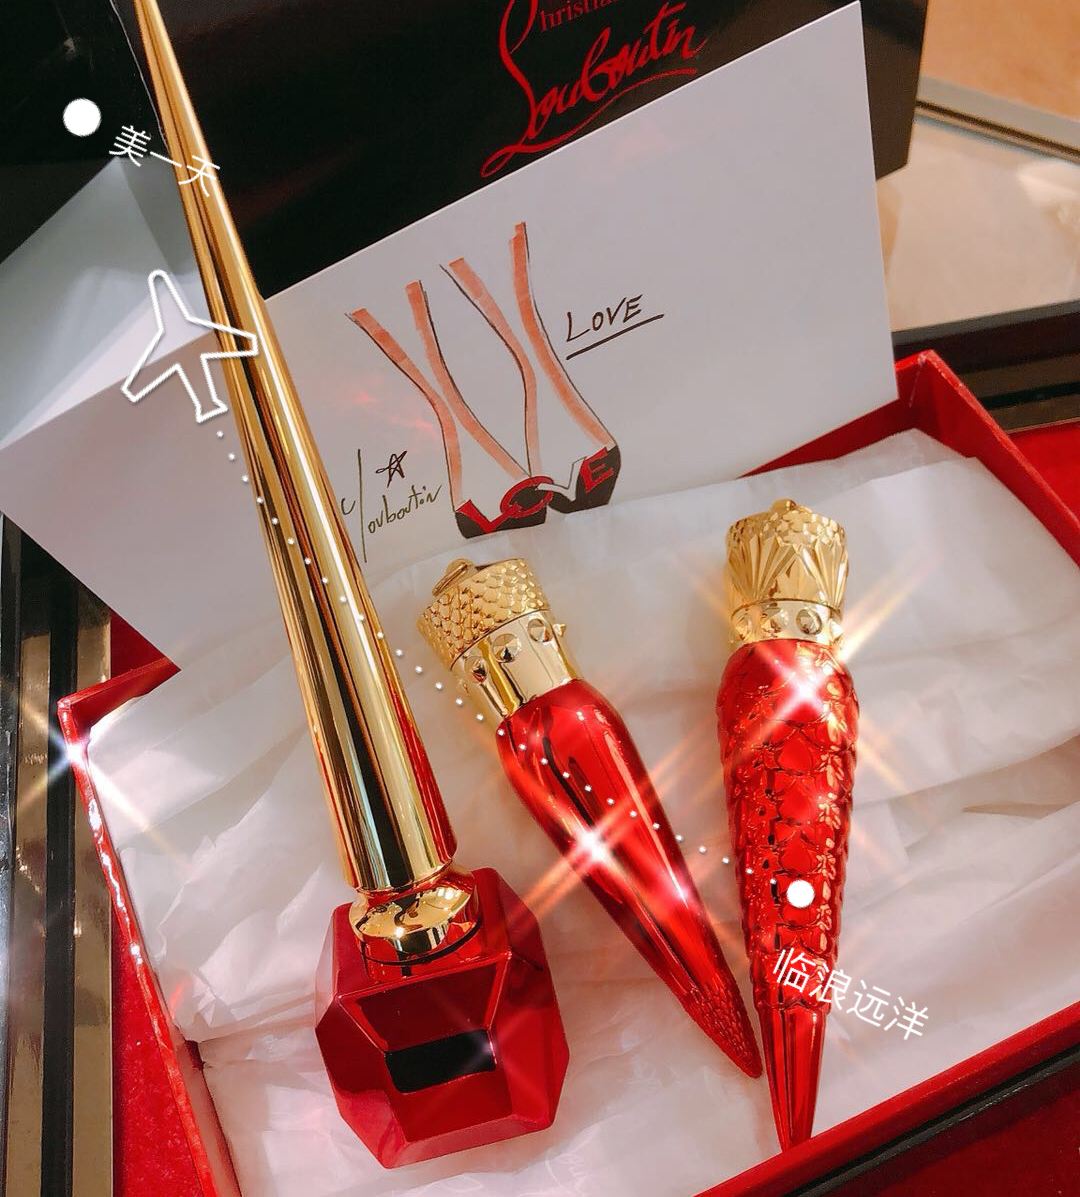 d9aa6ef2003 Christian Louboutin spot CL radish Ding lipstick counter genuine limited  edition 001m lettering